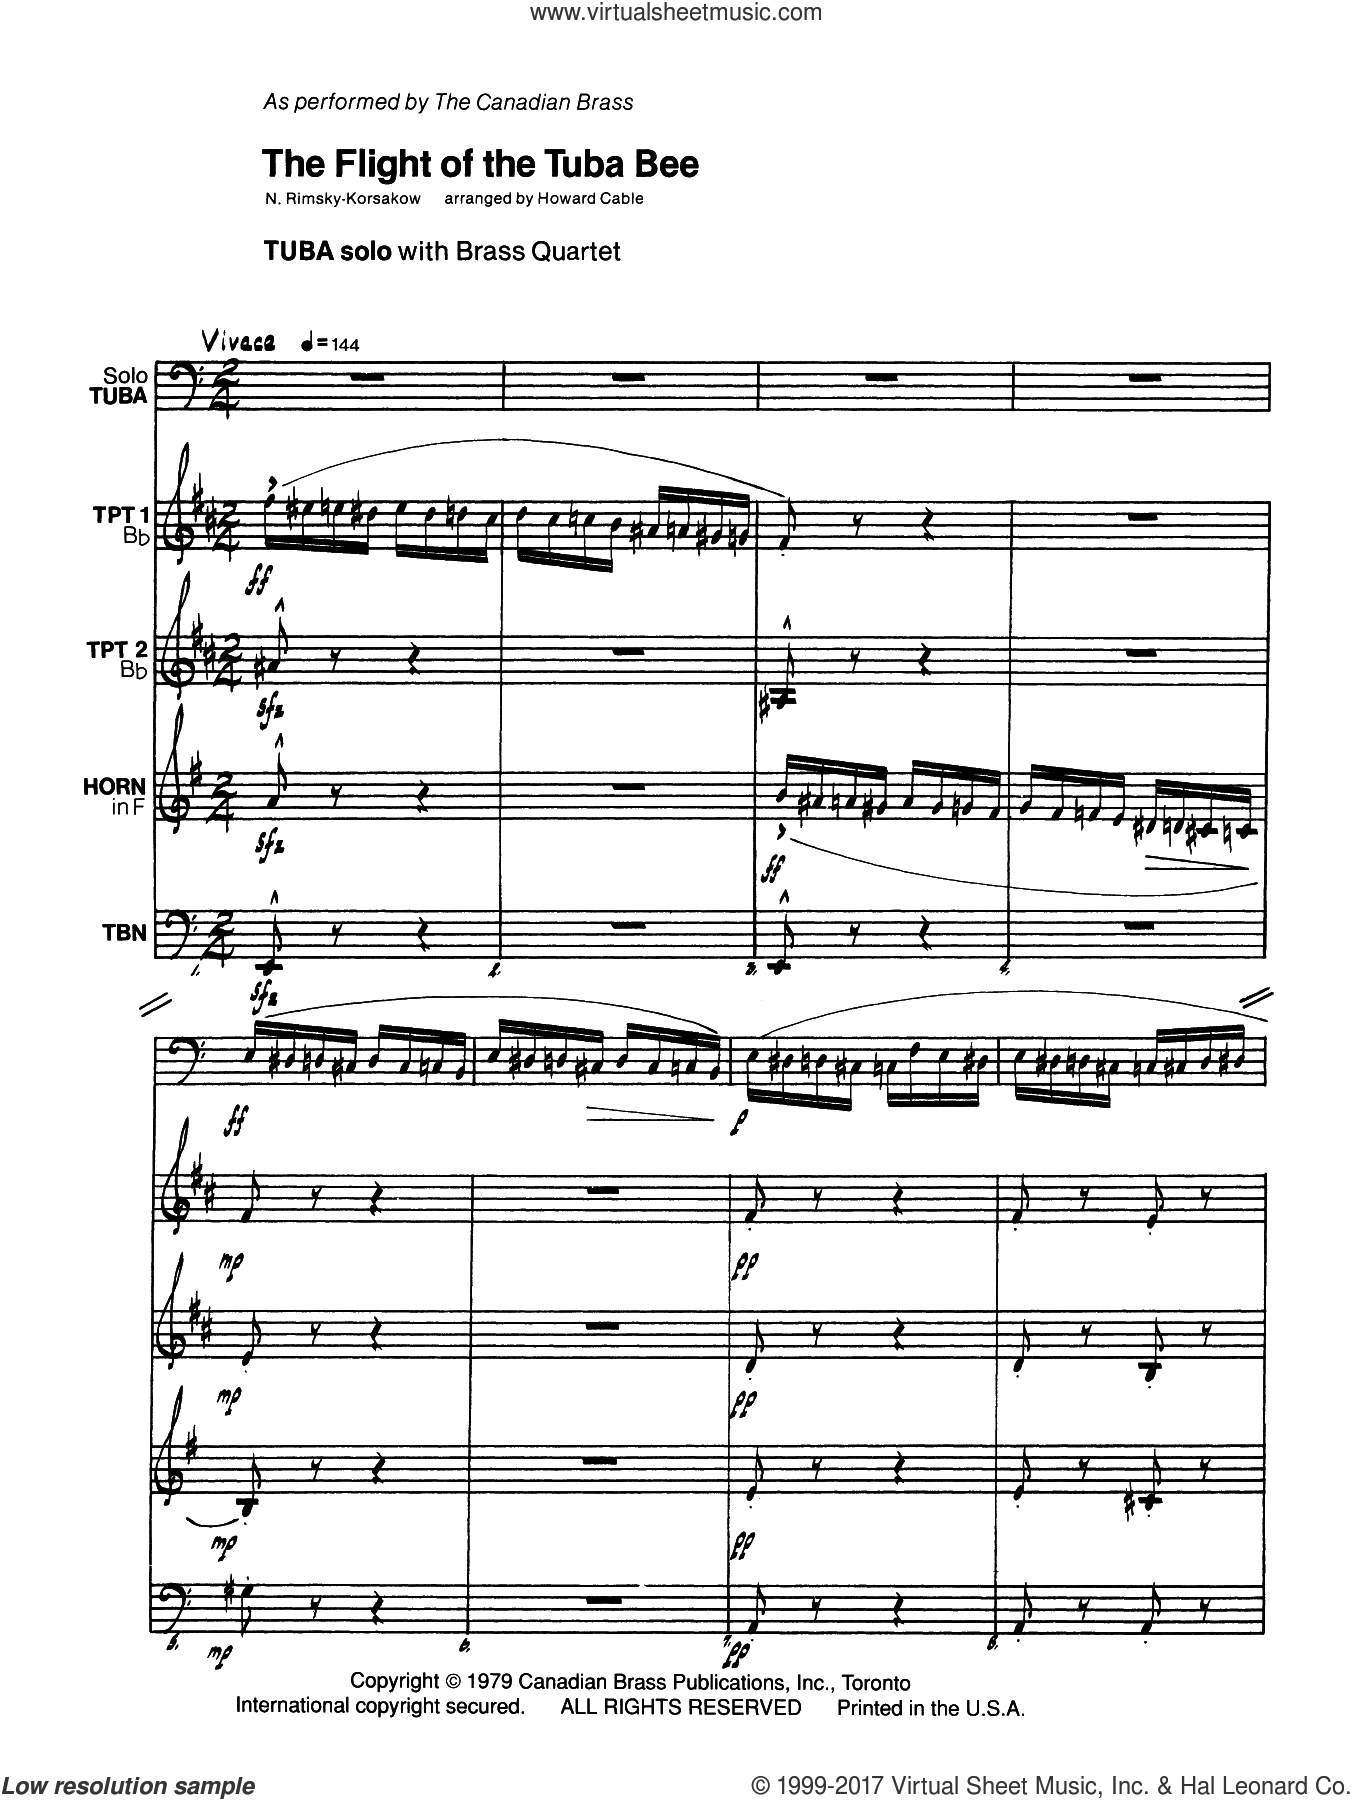 The Flight of the Tuba Bee (COMPLETE) sheet music for brass quintet by Howard Cable and N. Rimsky-Korsakow, classical score, intermediate skill level